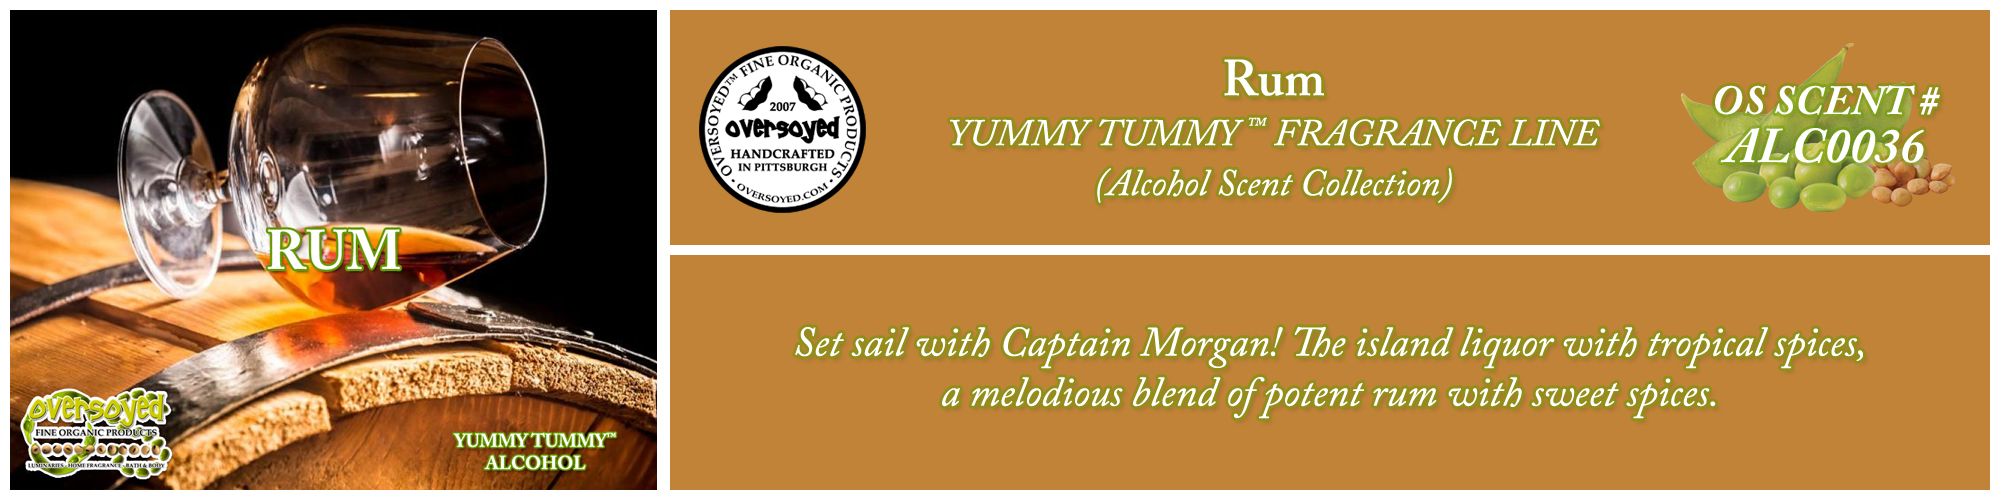 Rum Handcrafted Products Collection